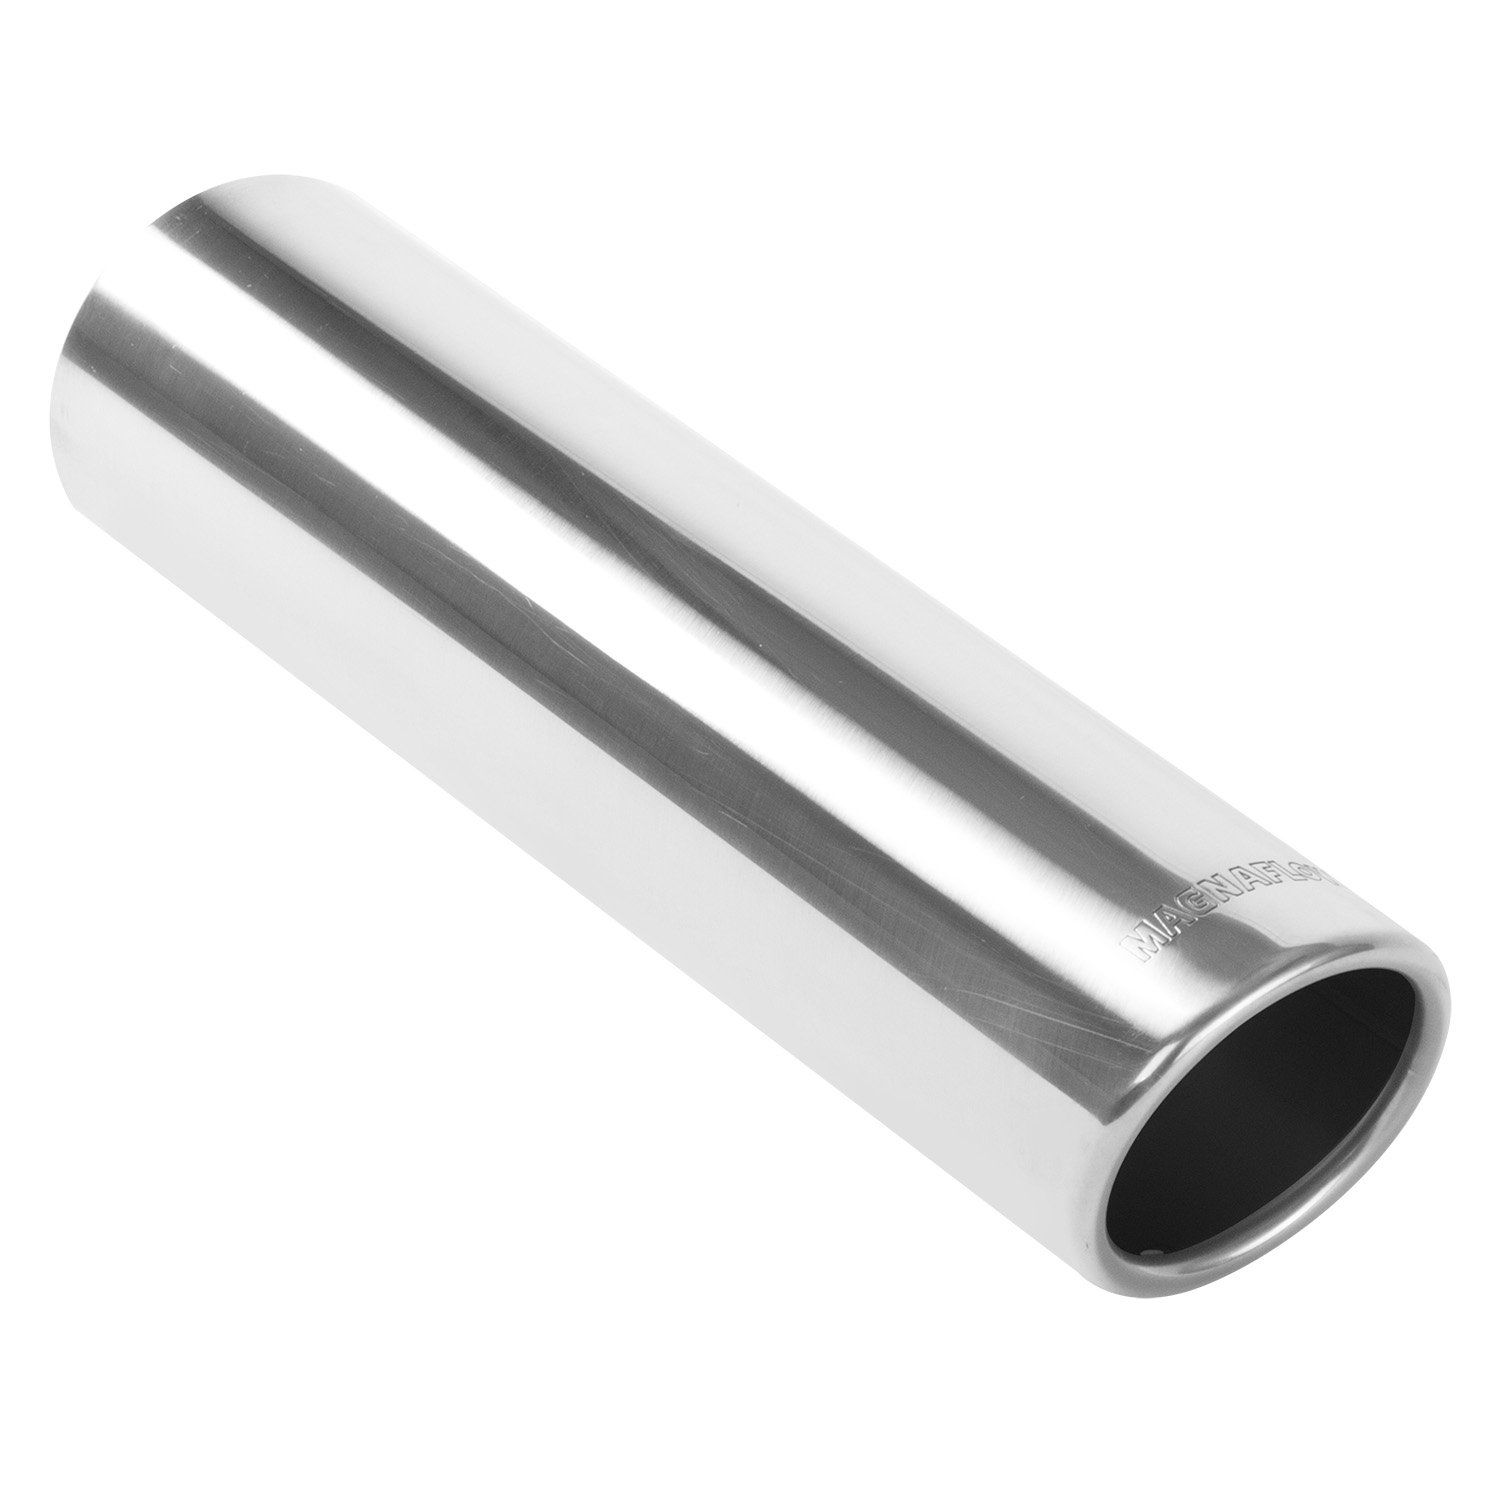 Magnaflow 35113 EXHAUST TAIL PIPE TIP